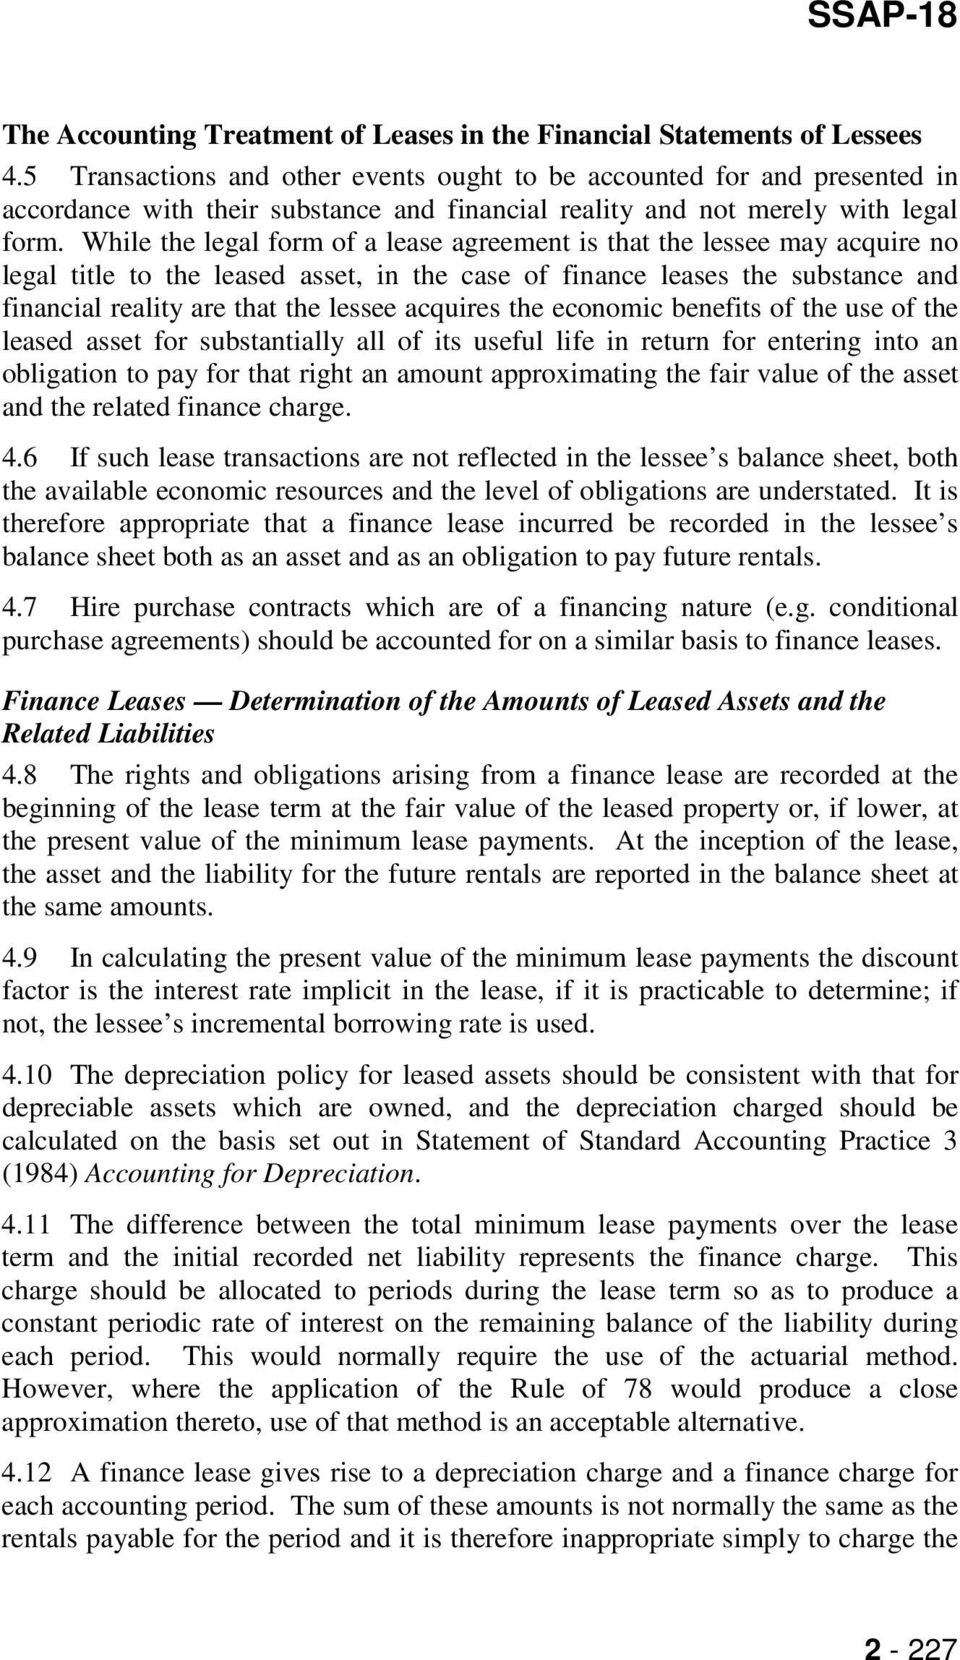 While the legal form of a lease agreement is that the lessee may acquire no legal title to the leased asset, in the case of finance leases the substance and financial reality are that the lessee